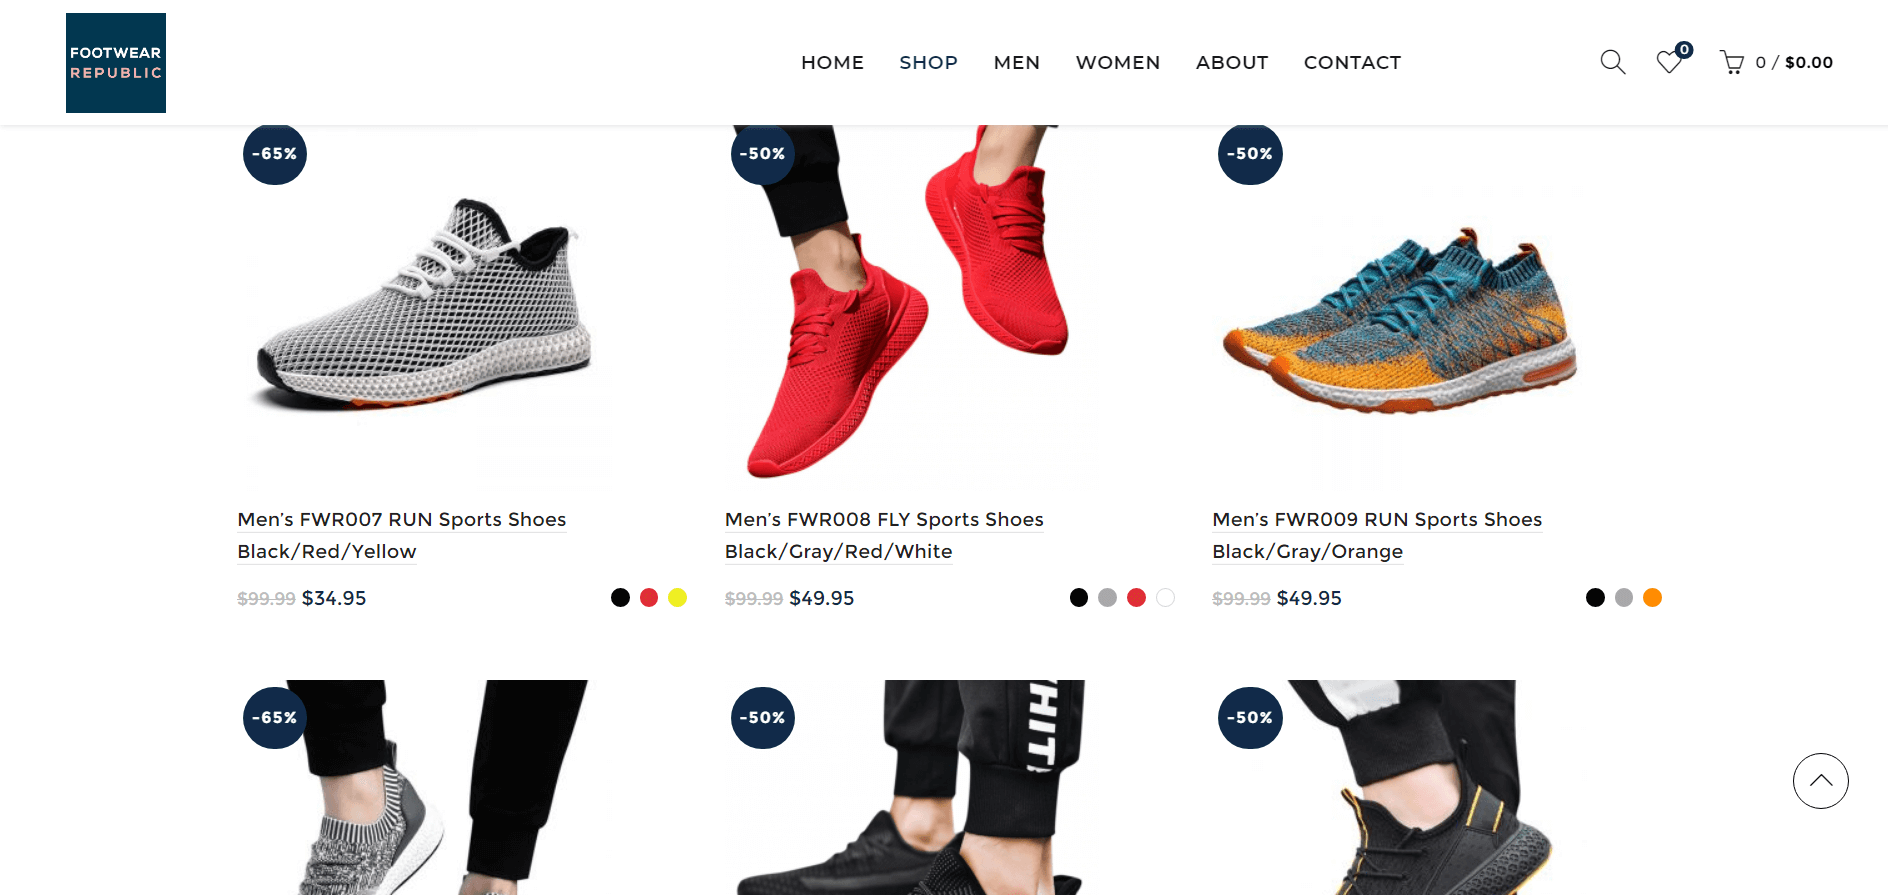 footwear republic shop page